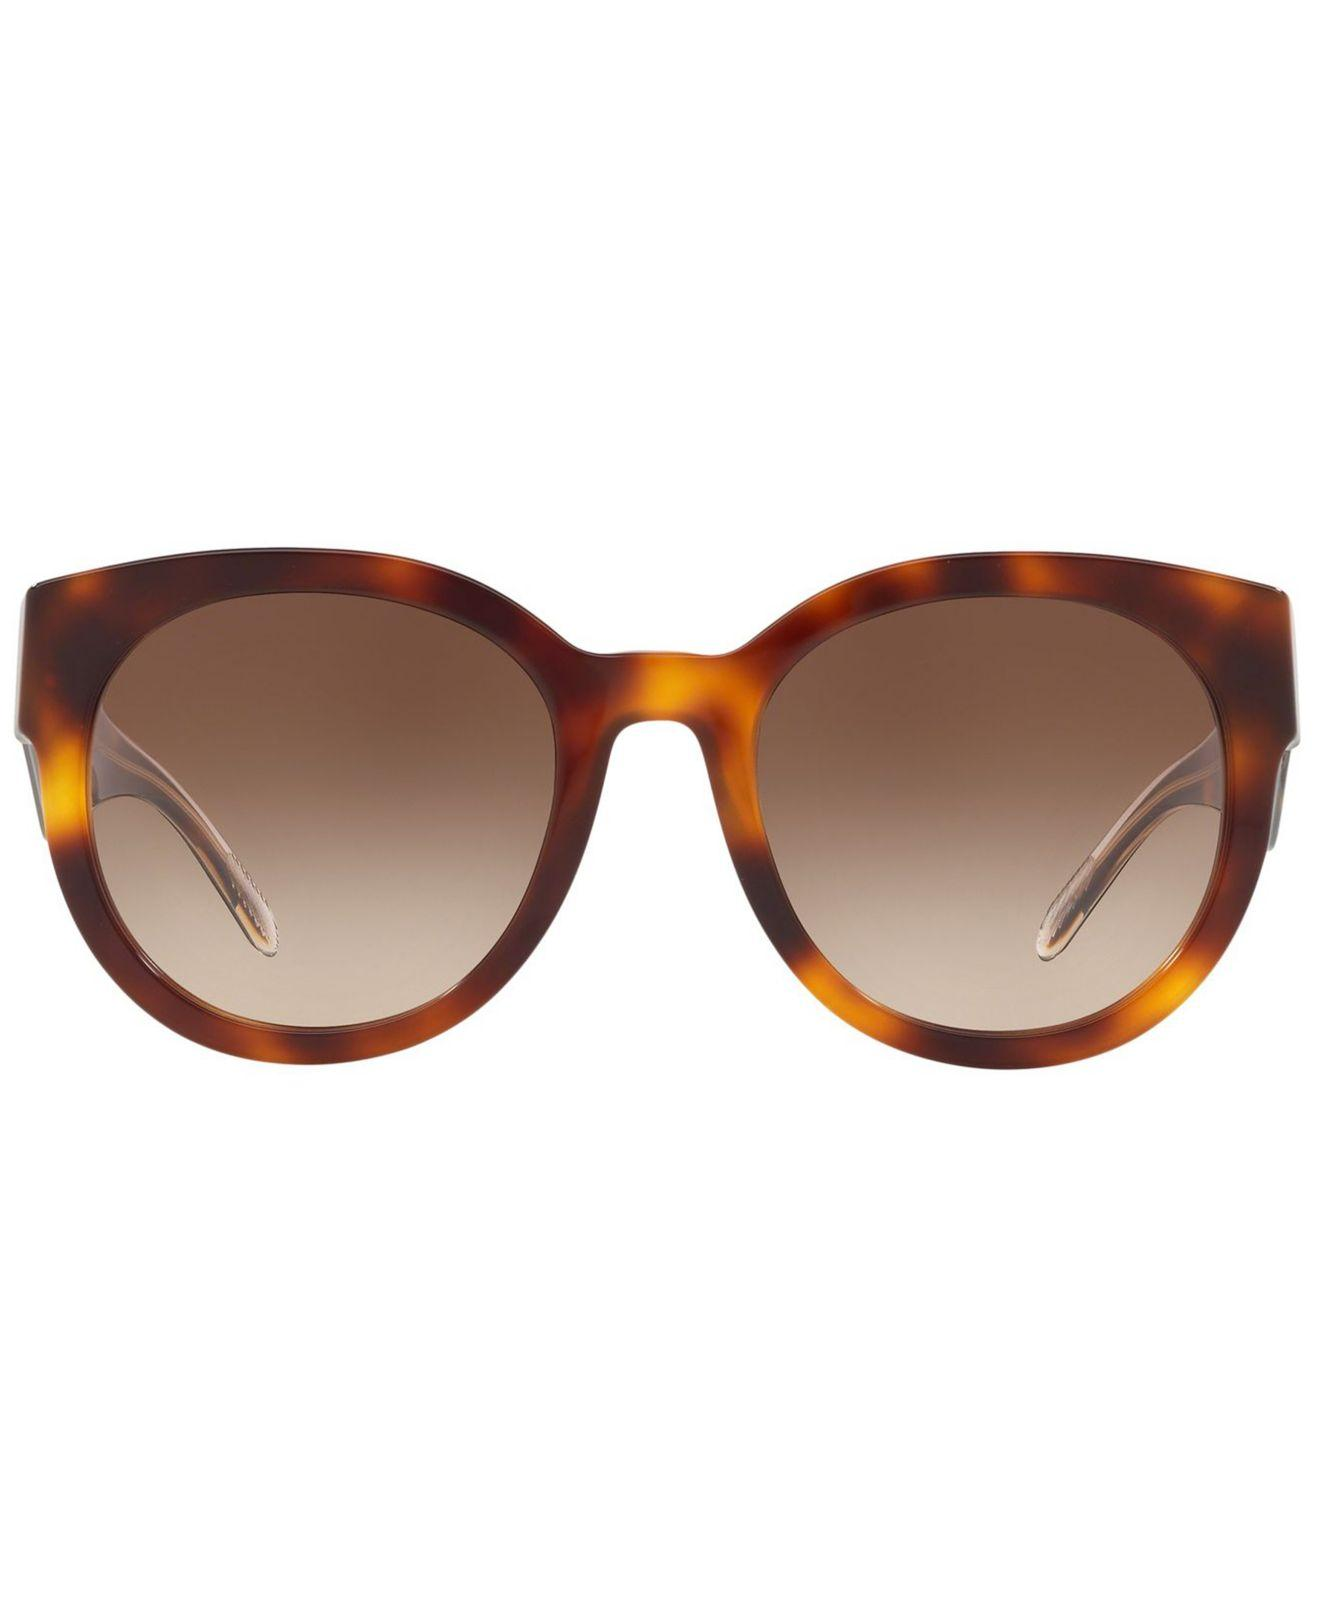 3124aa93a Lyst - Burberry Sunglasses, Be4260 54 in Brown